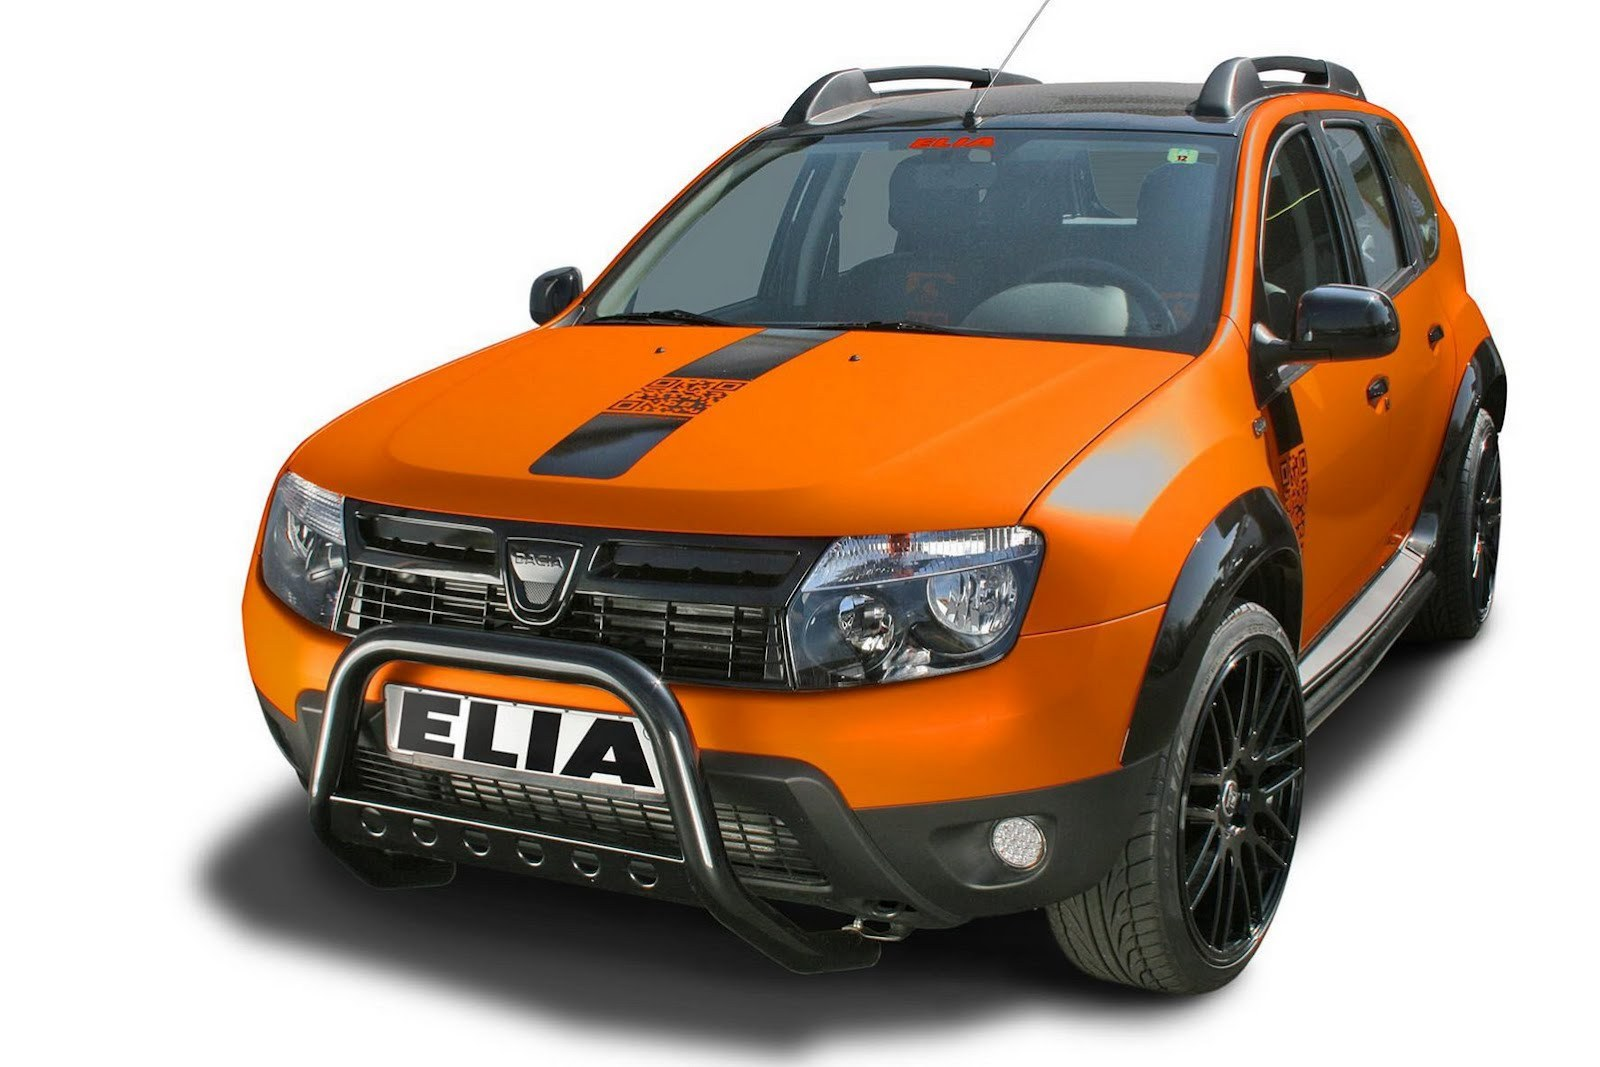 le dacia duster devient baroudeur de ville avec elia. Black Bedroom Furniture Sets. Home Design Ideas